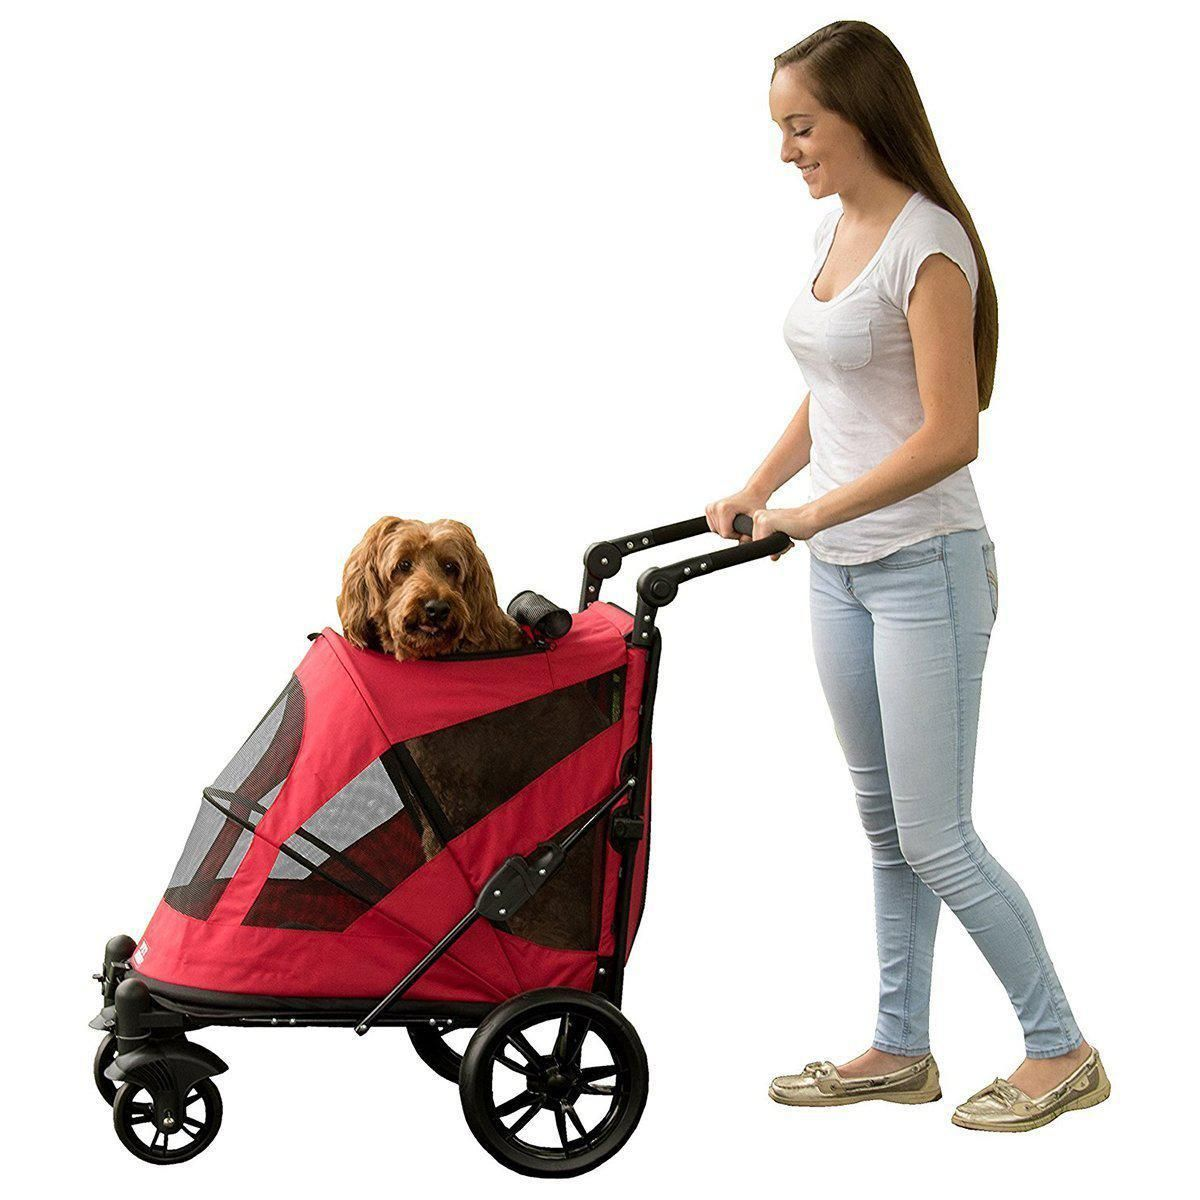 NoZip Excursion Dog Stroller Candy Red Pet stroller